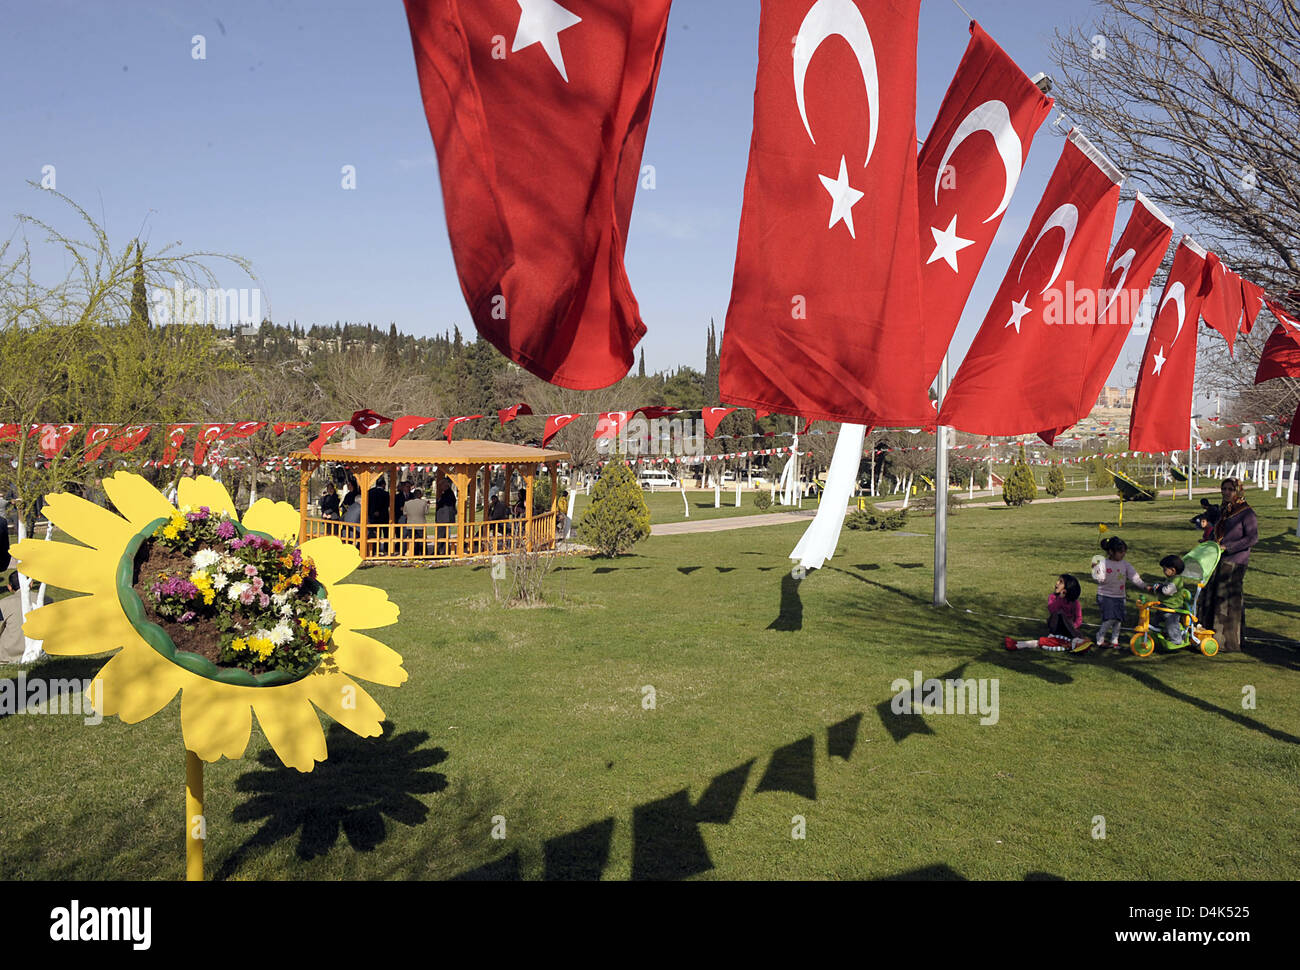 Turkish flags wave in the newly founded Ludwigshafen Park in Gaziantep, Turkey, 01 April 2009. The park is a memorial - Stock Image